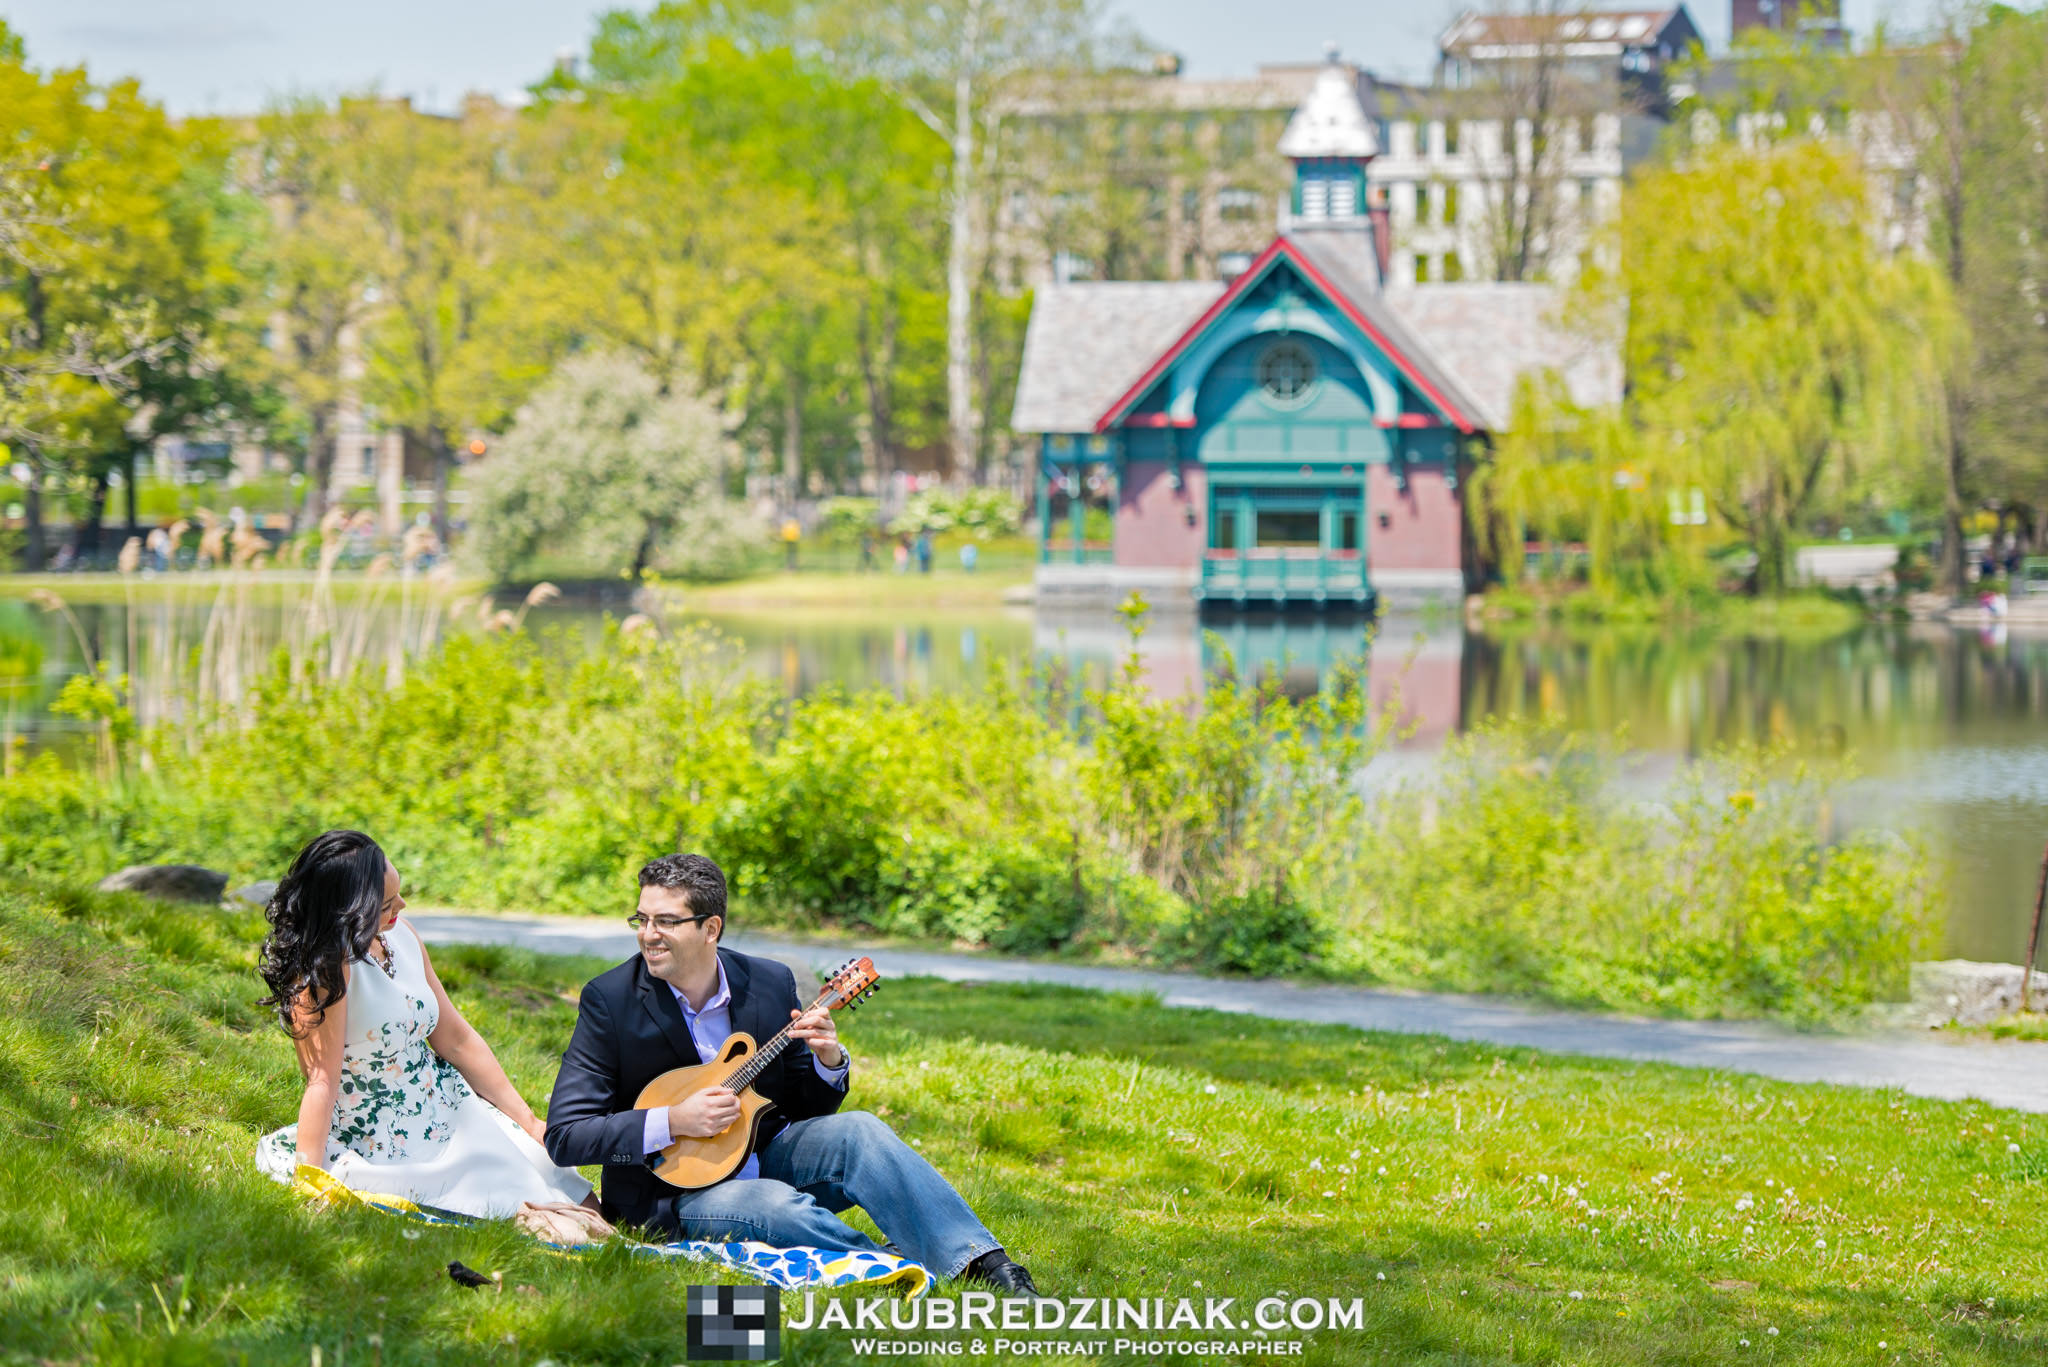 Couple posing on a picnic blanket with a guitar in Central Park in New York City for engagement session by boathouse